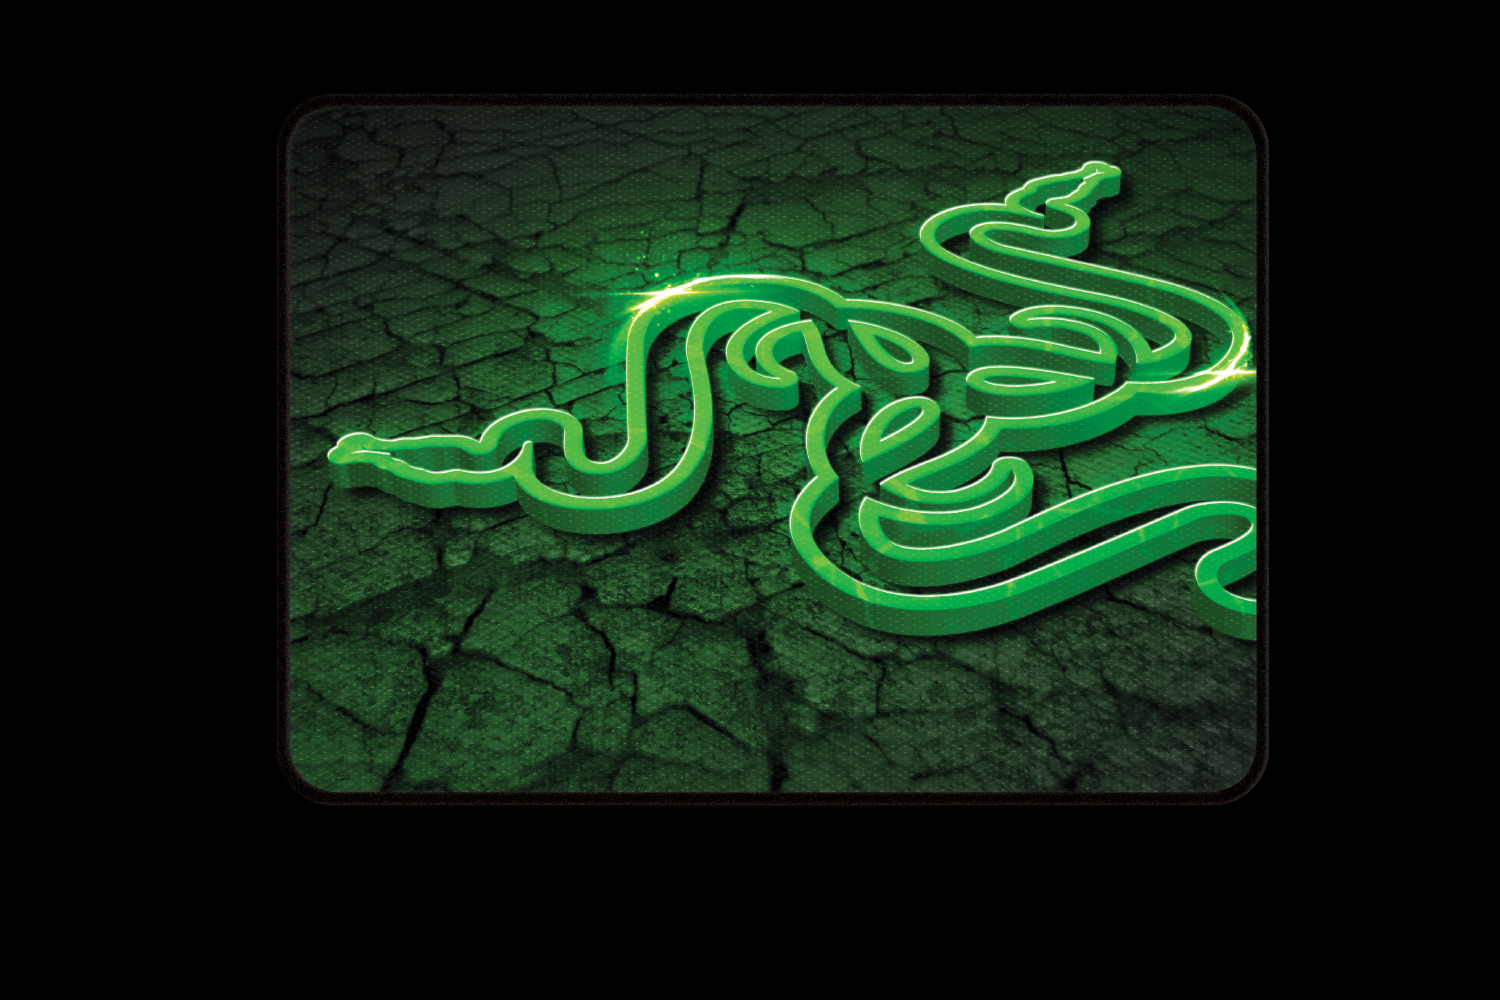 Gaming mouse mat razer goliathus control edition gallery fandeluxe Choice Image